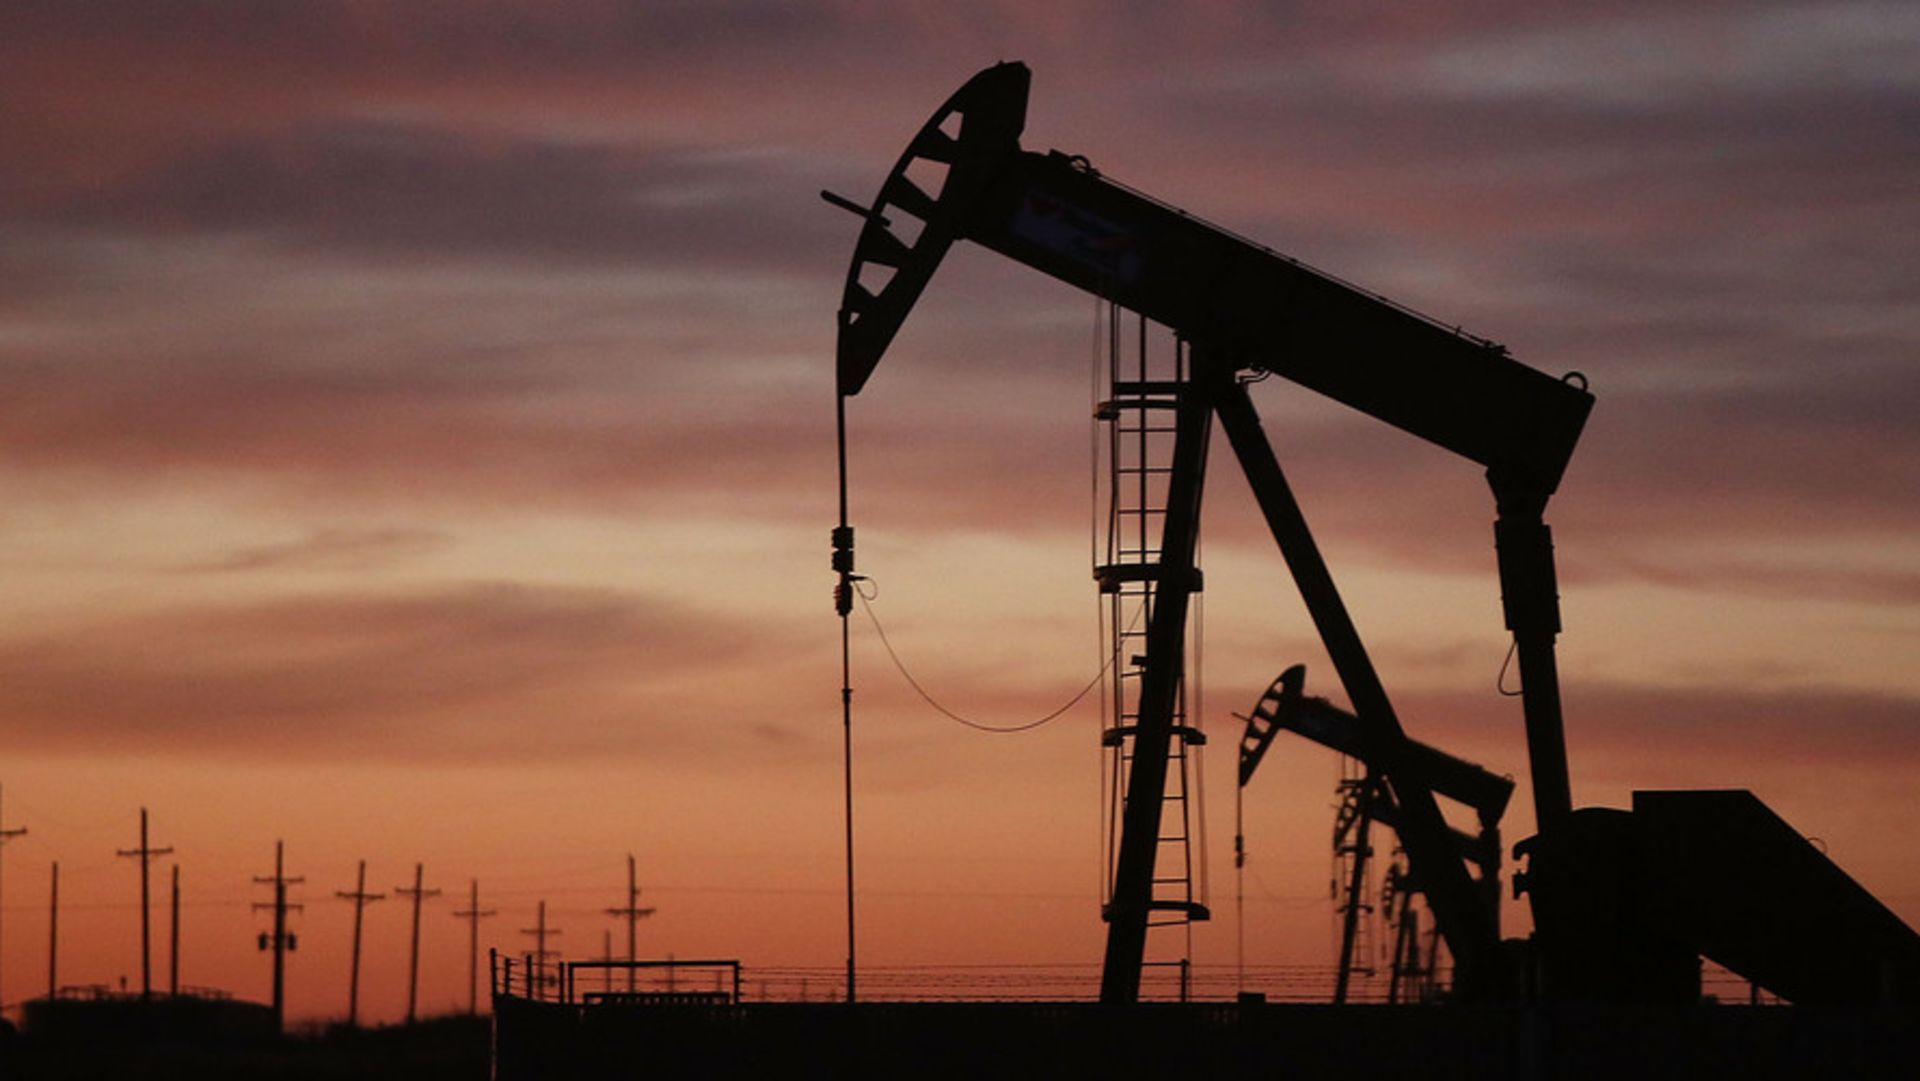 Denver energy company to focus on Texas oil with $732M oilfield buy